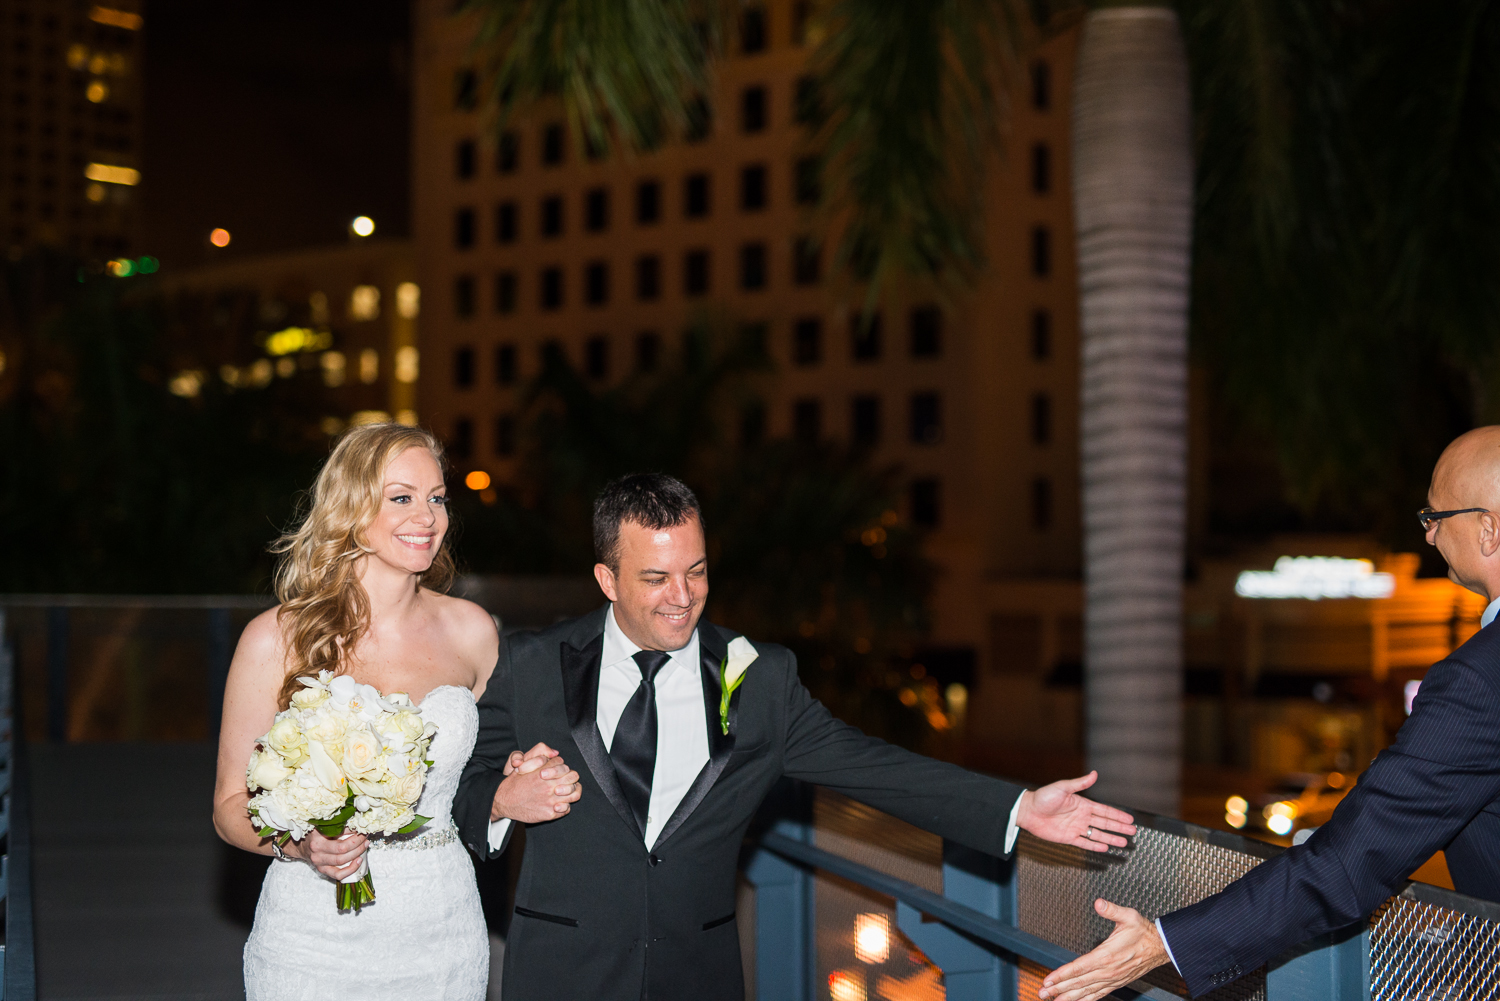 brandwold.se-miami-wedding-fortlauderdale-134